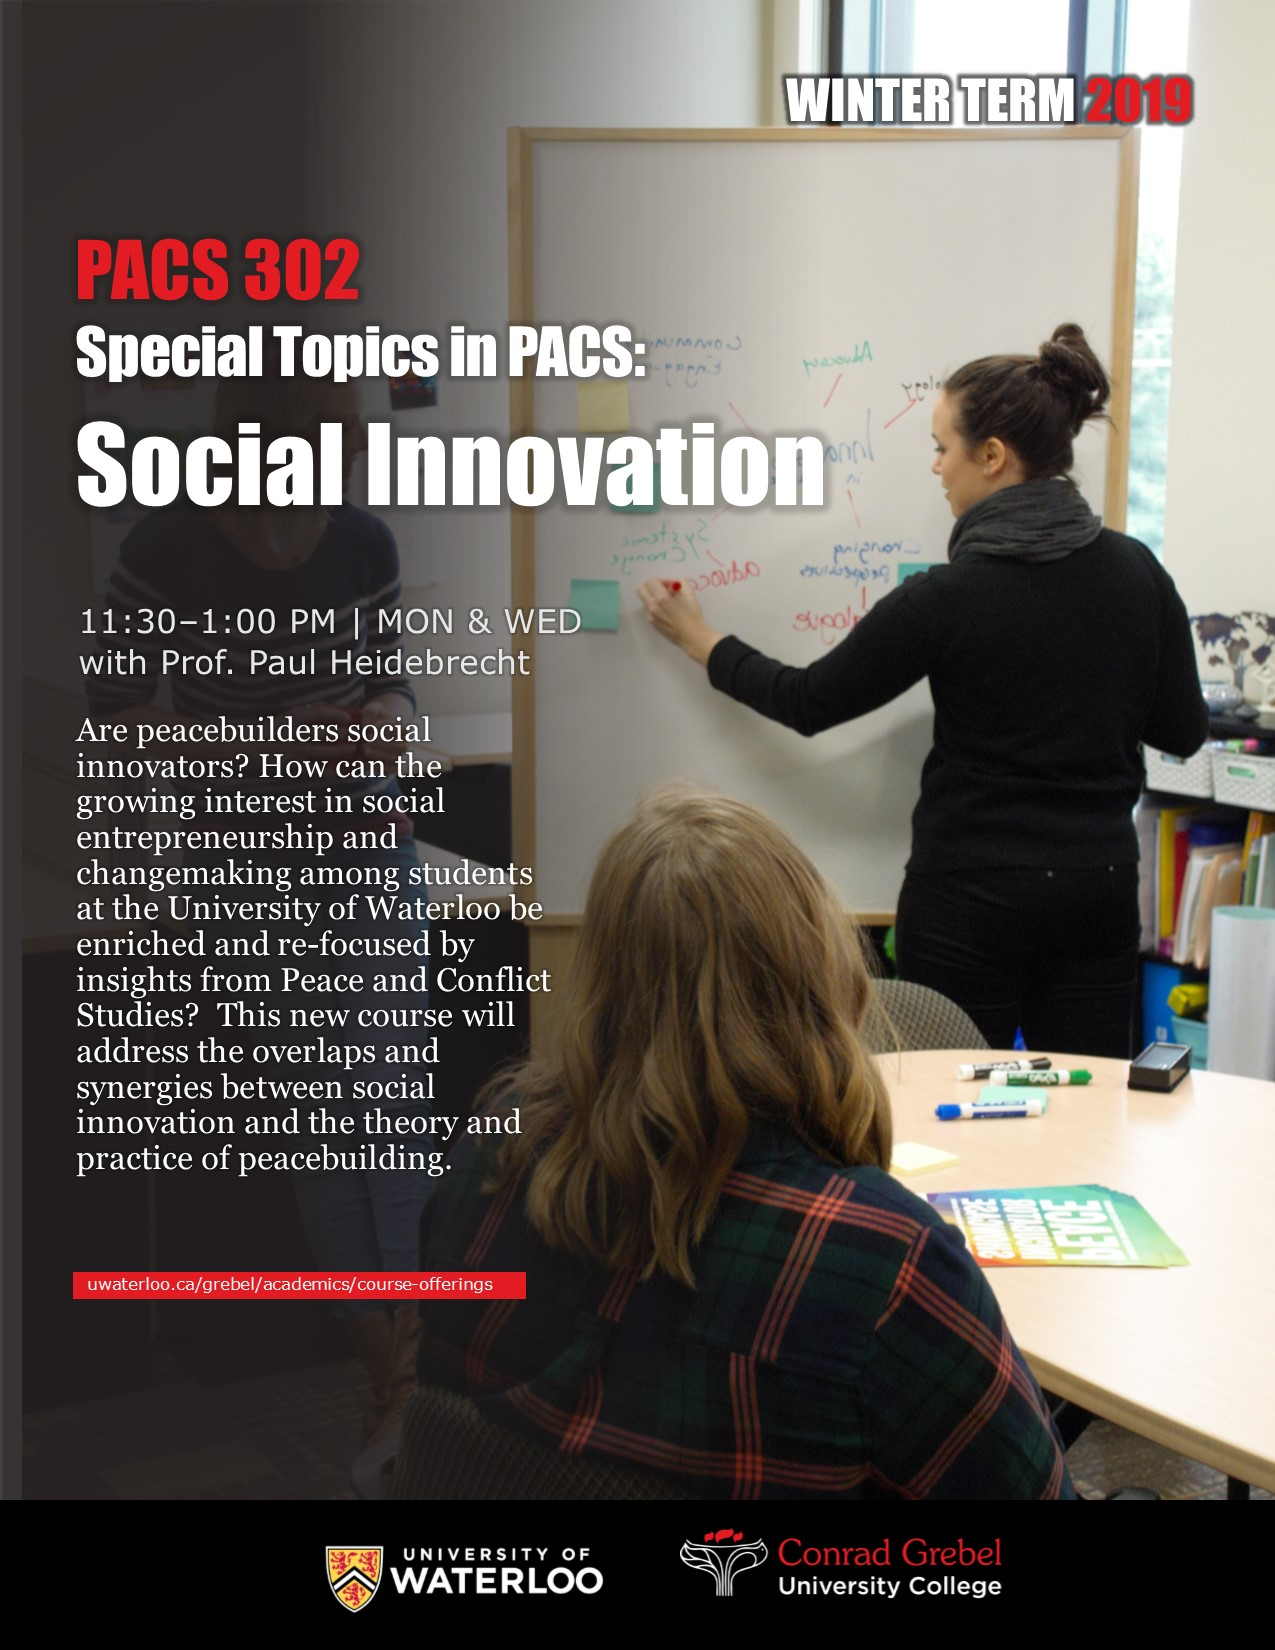 Poster for PACS 302. Features a woman writing on a whiteboard. Also includes information about the course.